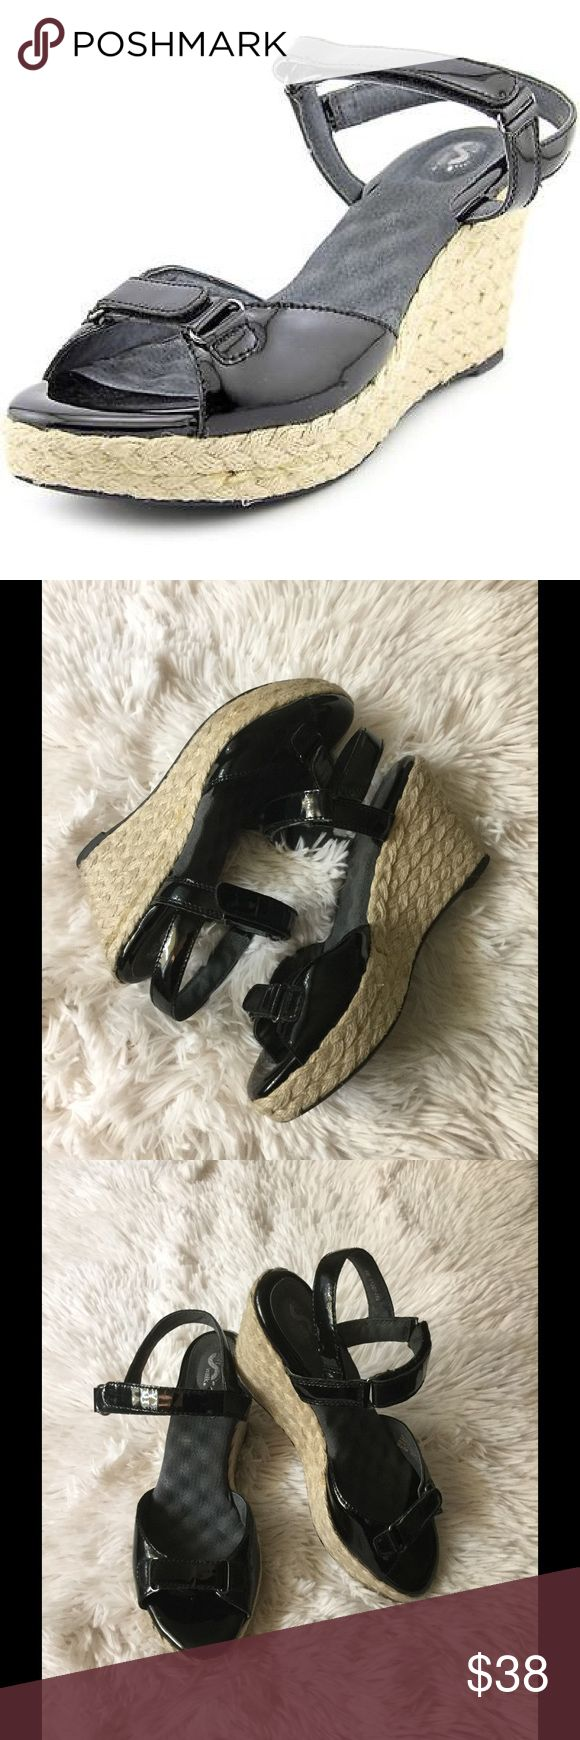 """🌴Soft walk SAN Marino padded leather wedges 🌴 🌴Size - 8  like perfect condition no signs of wear USBrand & Style - Softwalk San MarinoWidth - Medium (B, M)True Color - BlackUpper Material - Patent Leather Outsole Material - Man-MadeHeel Height - 3.5 InchesDescription - SoftWalk shoes invite the women who wear them to """"fall in love"""" with """"the ultimate comfort experience"""". All designs include such innovative features as unique massaging footbeds, additional ball and heel padding…"""